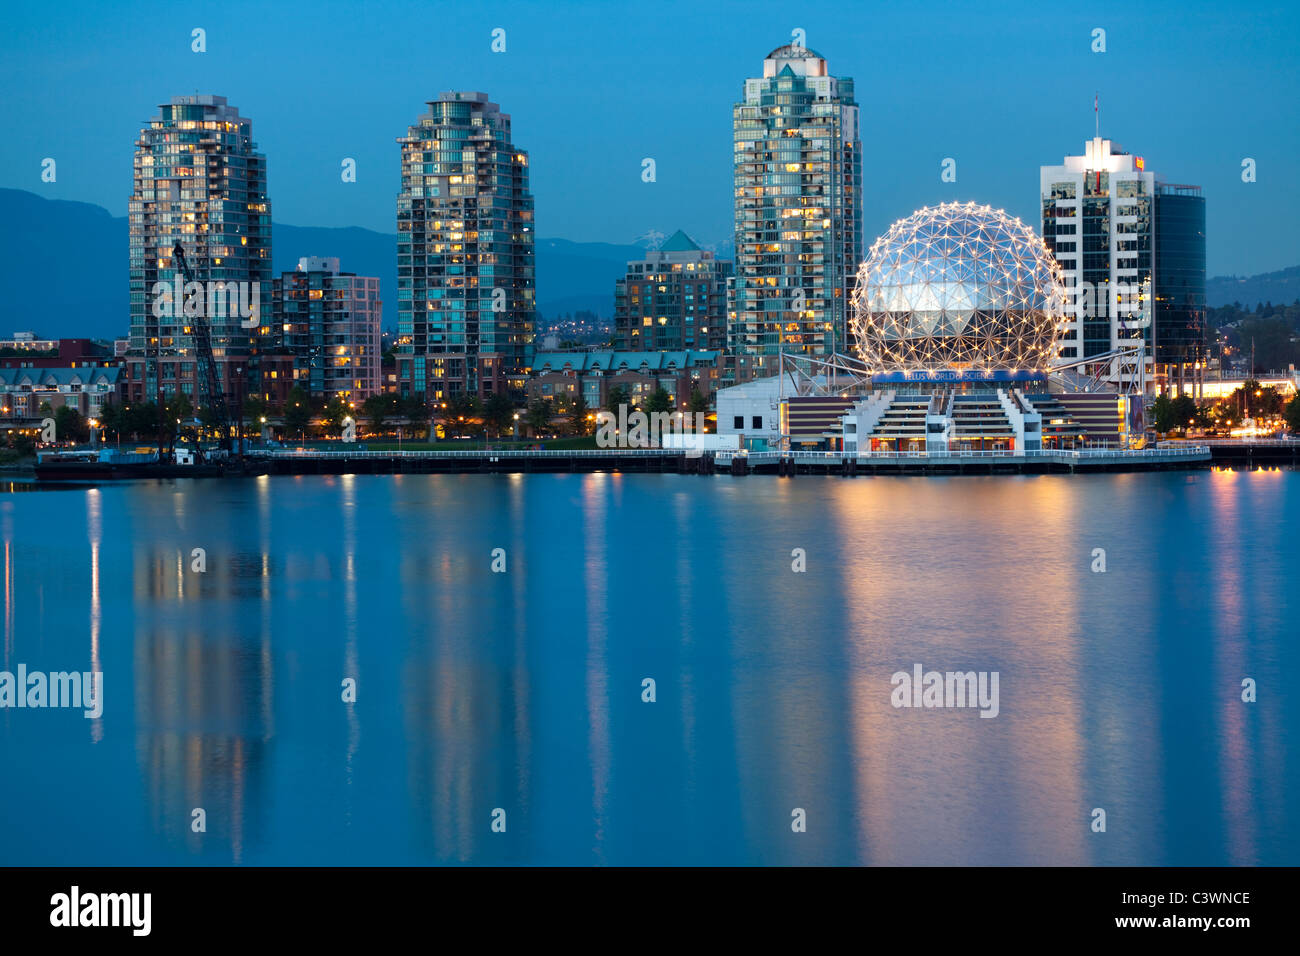 Vancouver B.C., Canada Skyline at night along the waterfront - Stock Image